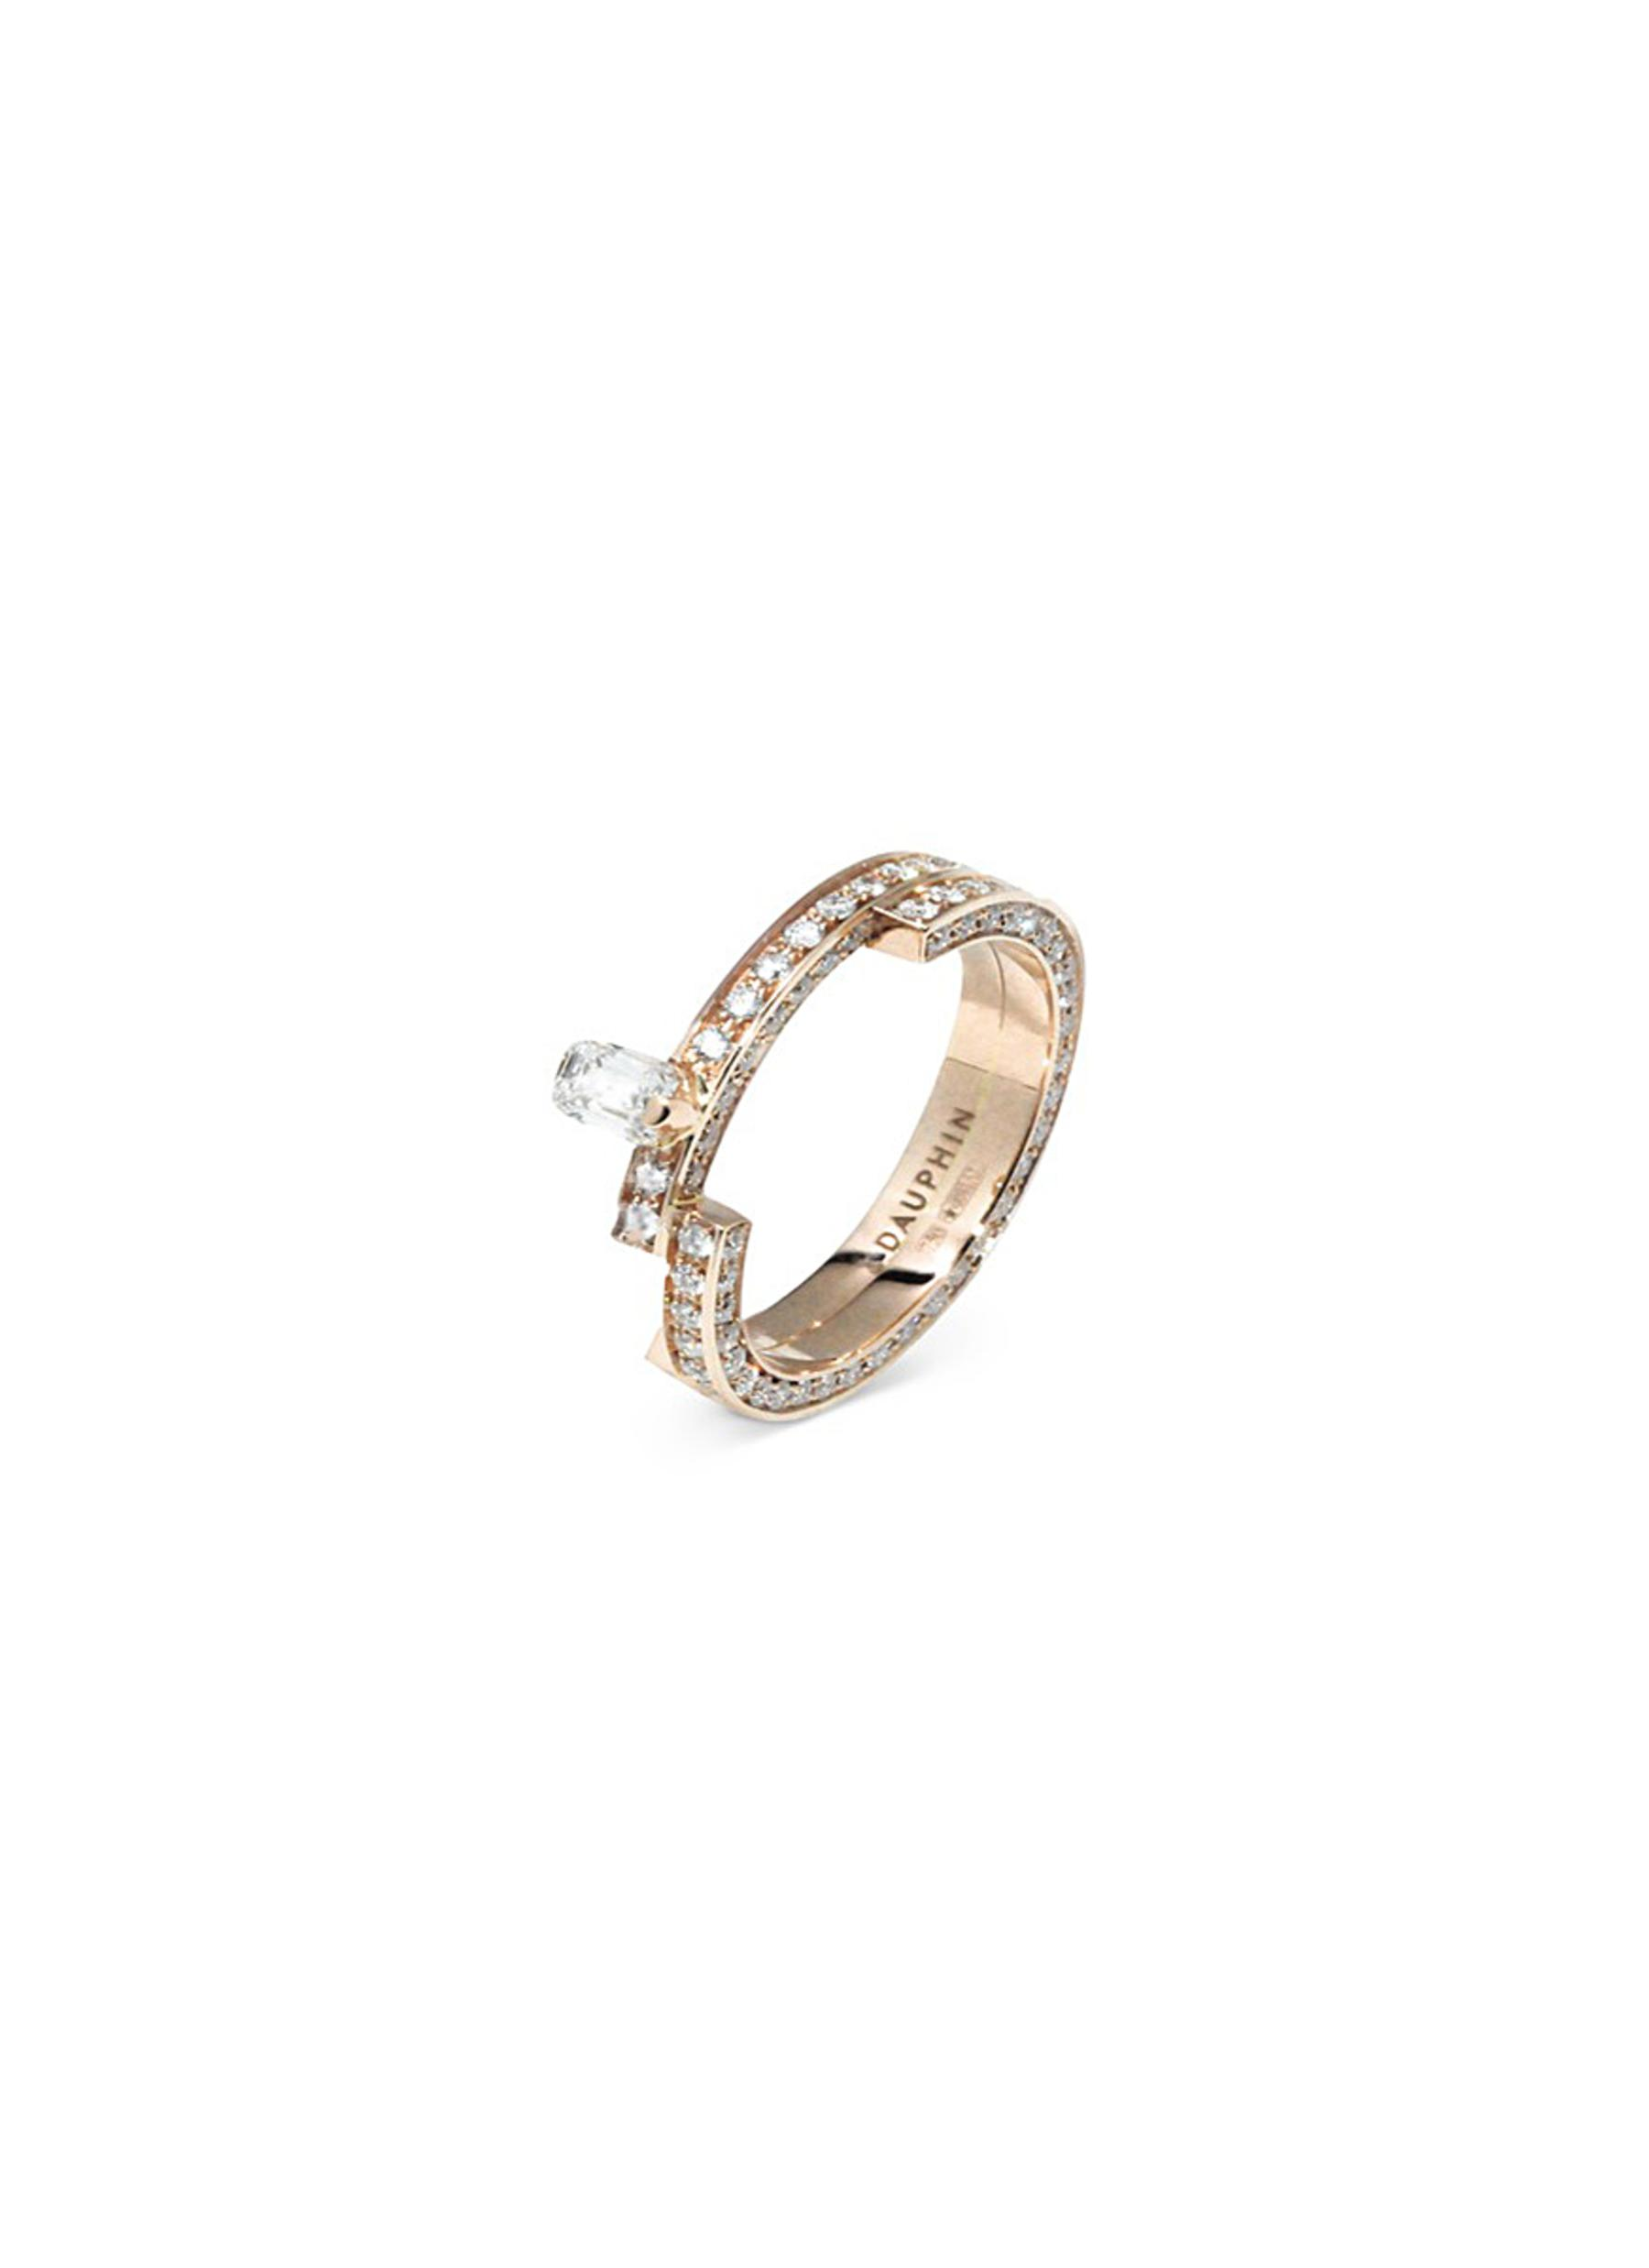 Disruptive pavé diamond 18k rose gold two tier ring by Dauphin